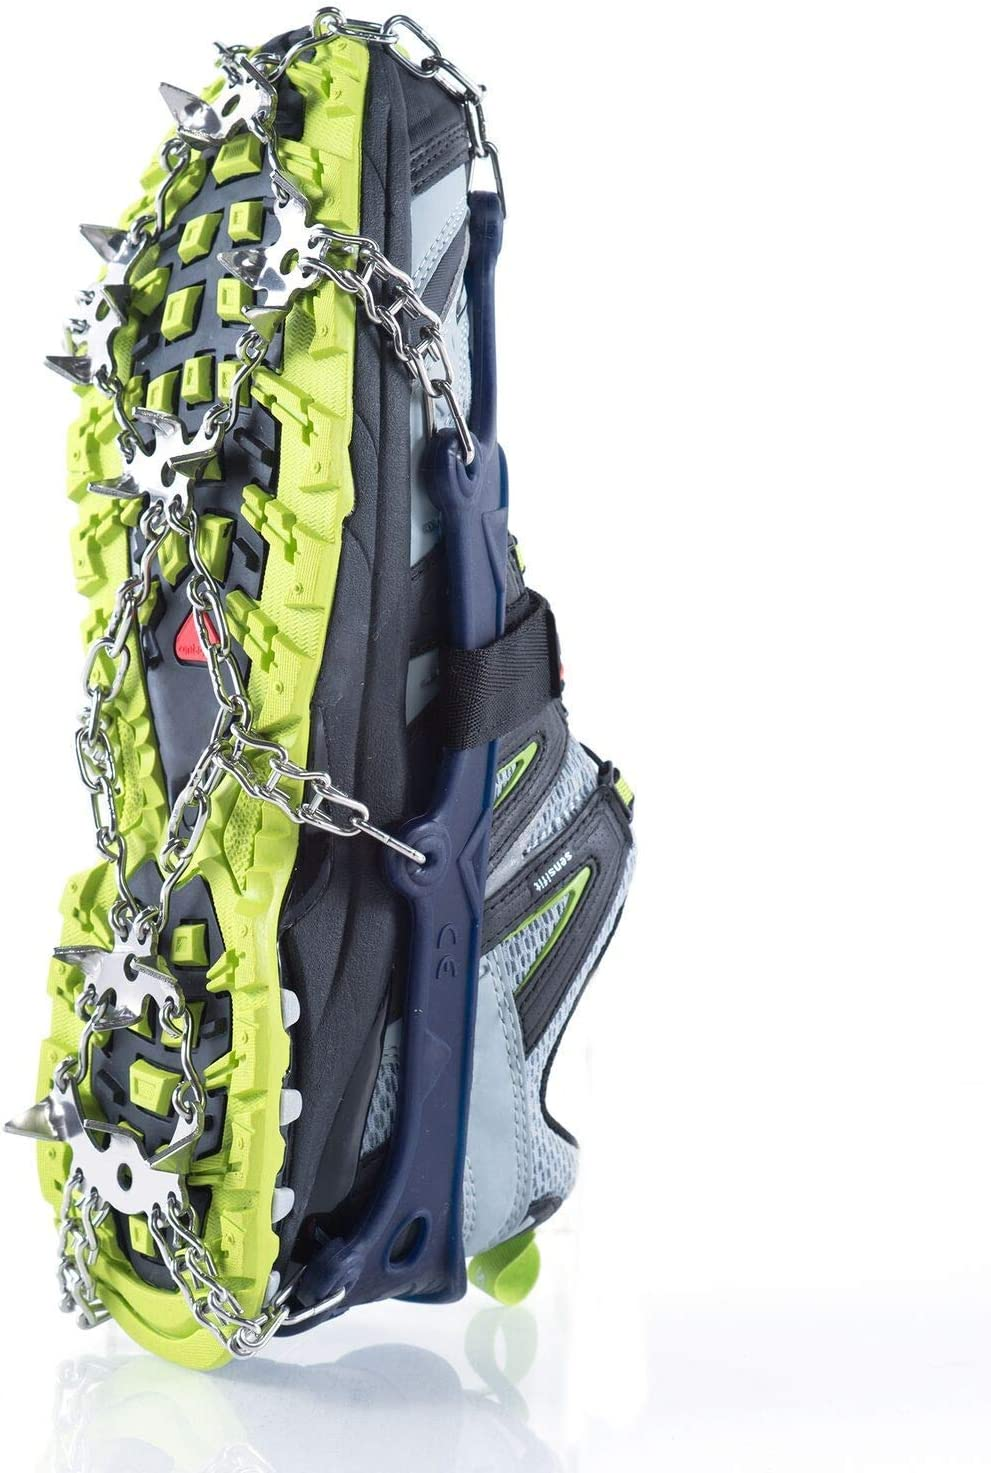 Hillsound Trail Crampon Ultra Traction Device